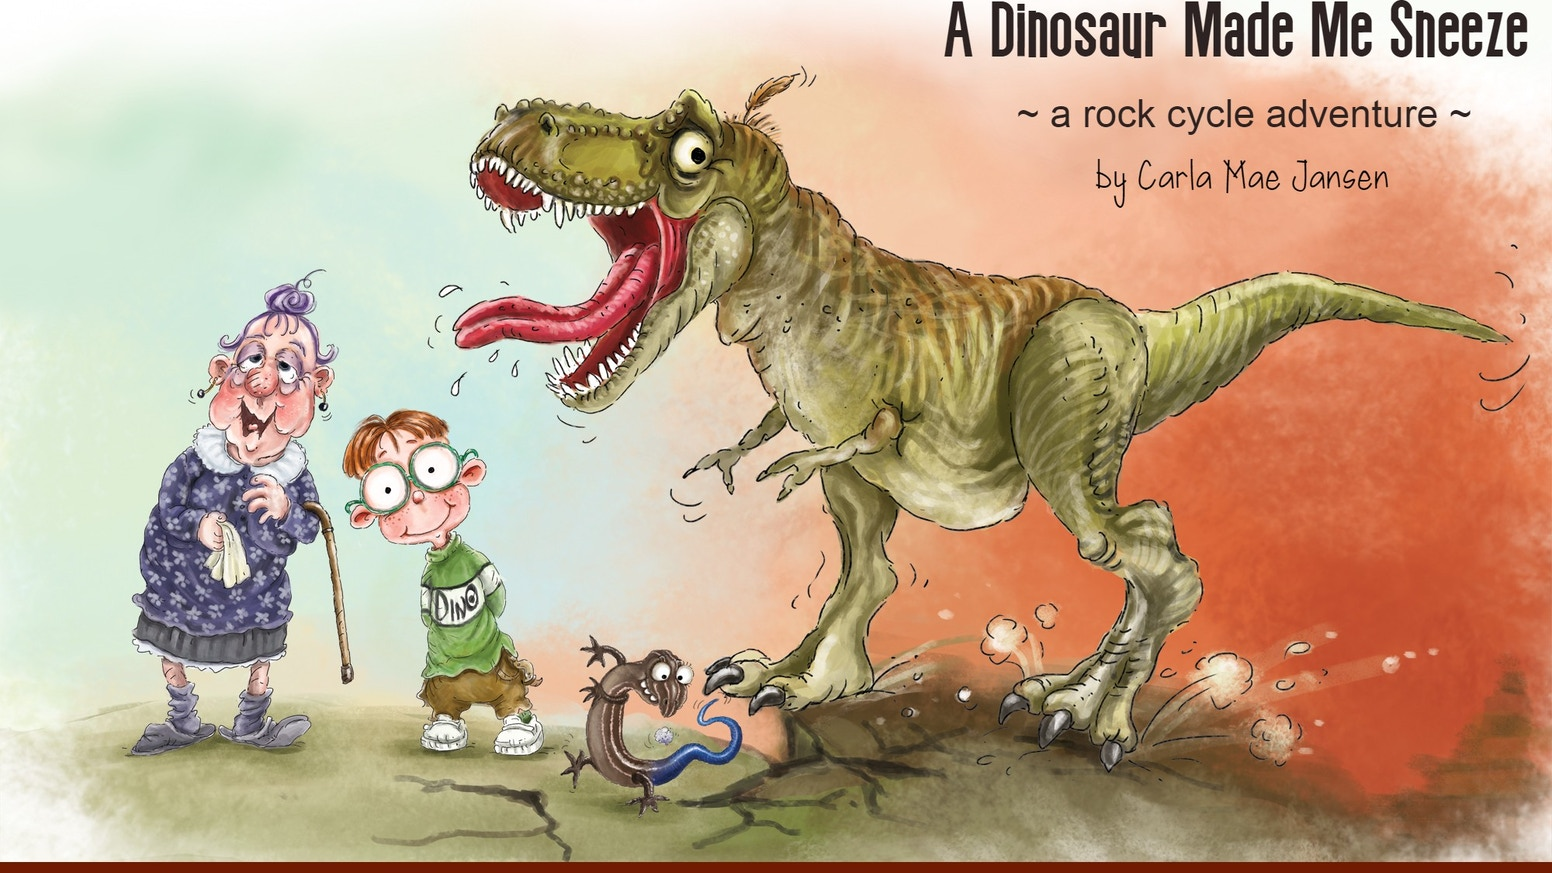 A children's book that takes you on a rock cycle adventure with dinosaurs, a crazy skink, sneezes, volcanoes, and more!Join us at www.TurtleTrailsPublishing.com to learn more and order now!!